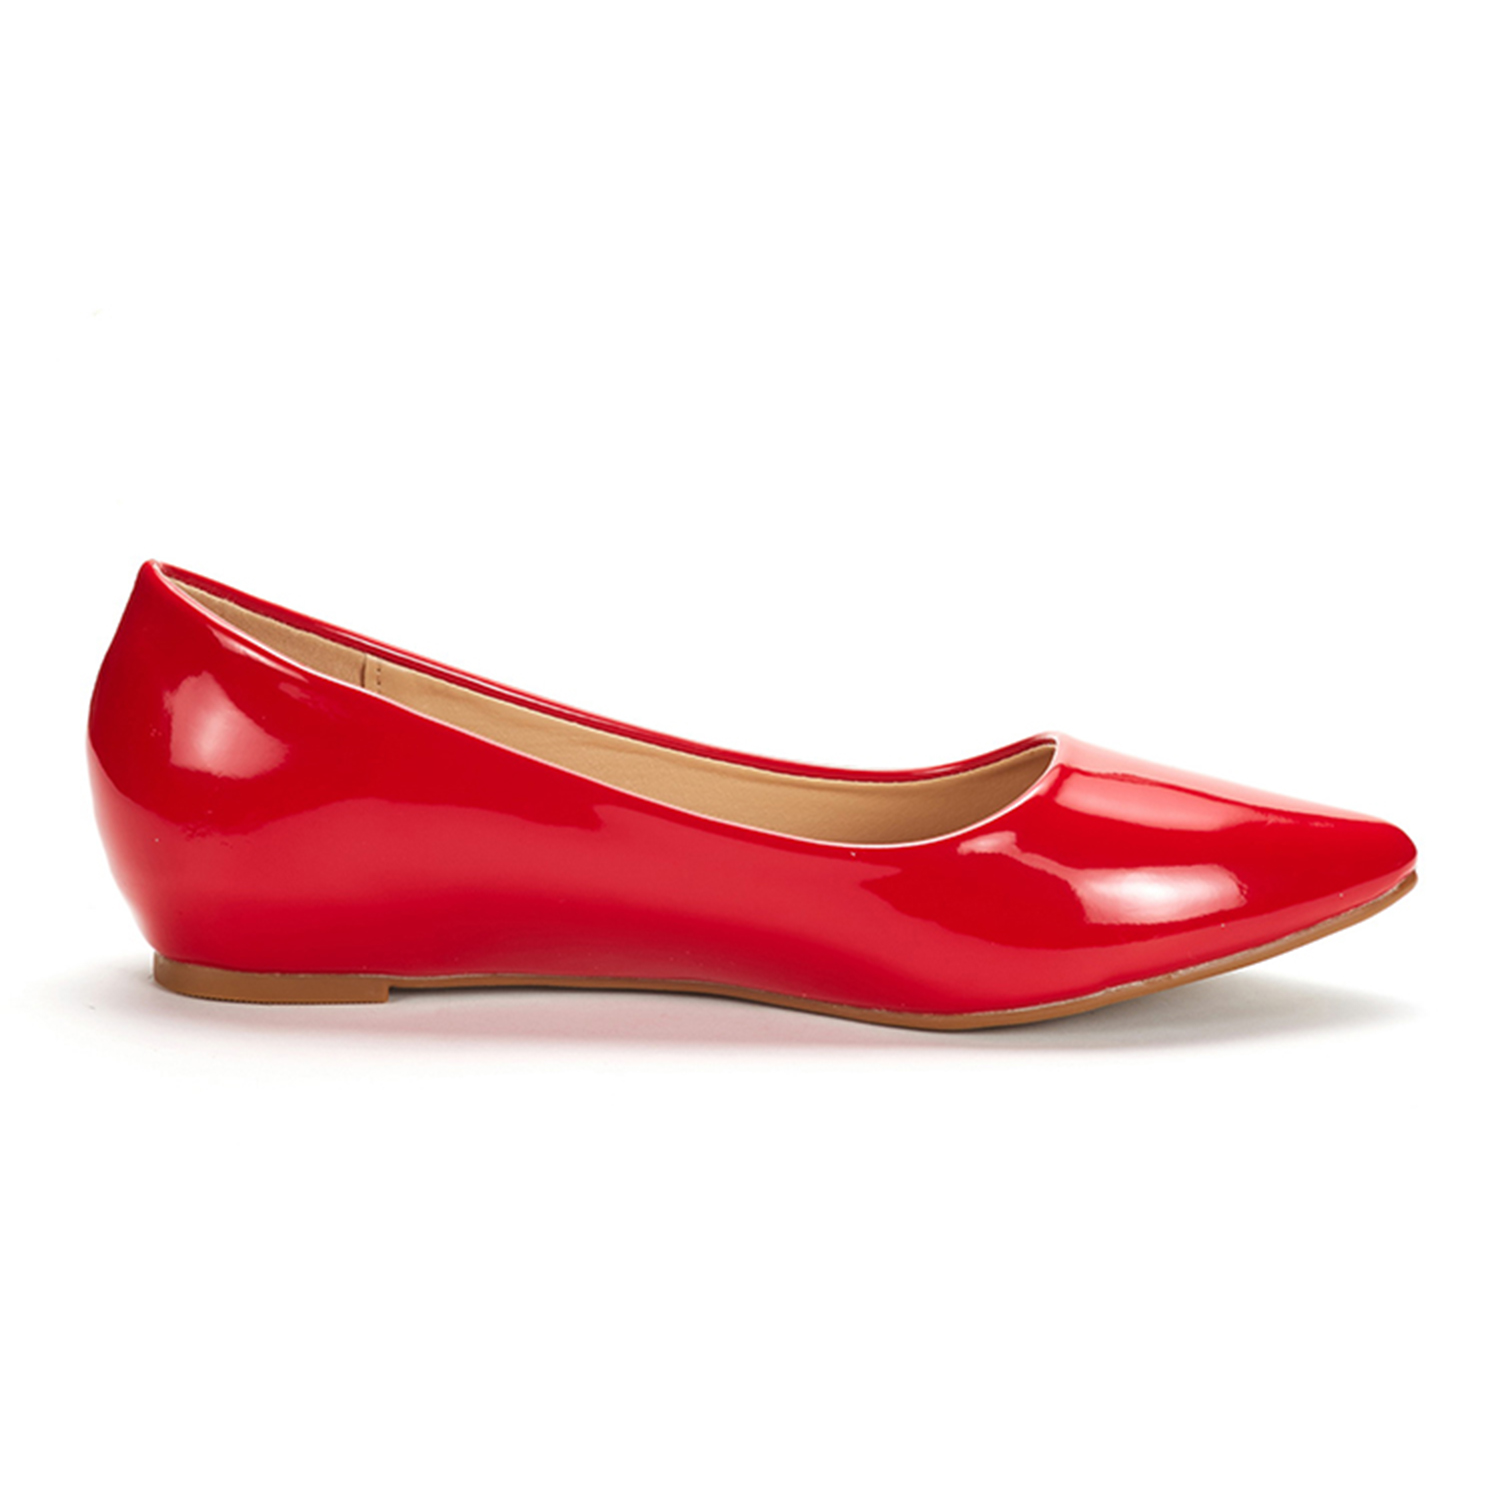 DREAM-PAIRS-Women-Low-Wedge-Flats-Ladies-Pointed-Toe-Slip-On-Comfort-Flat-Shoes thumbnail 36